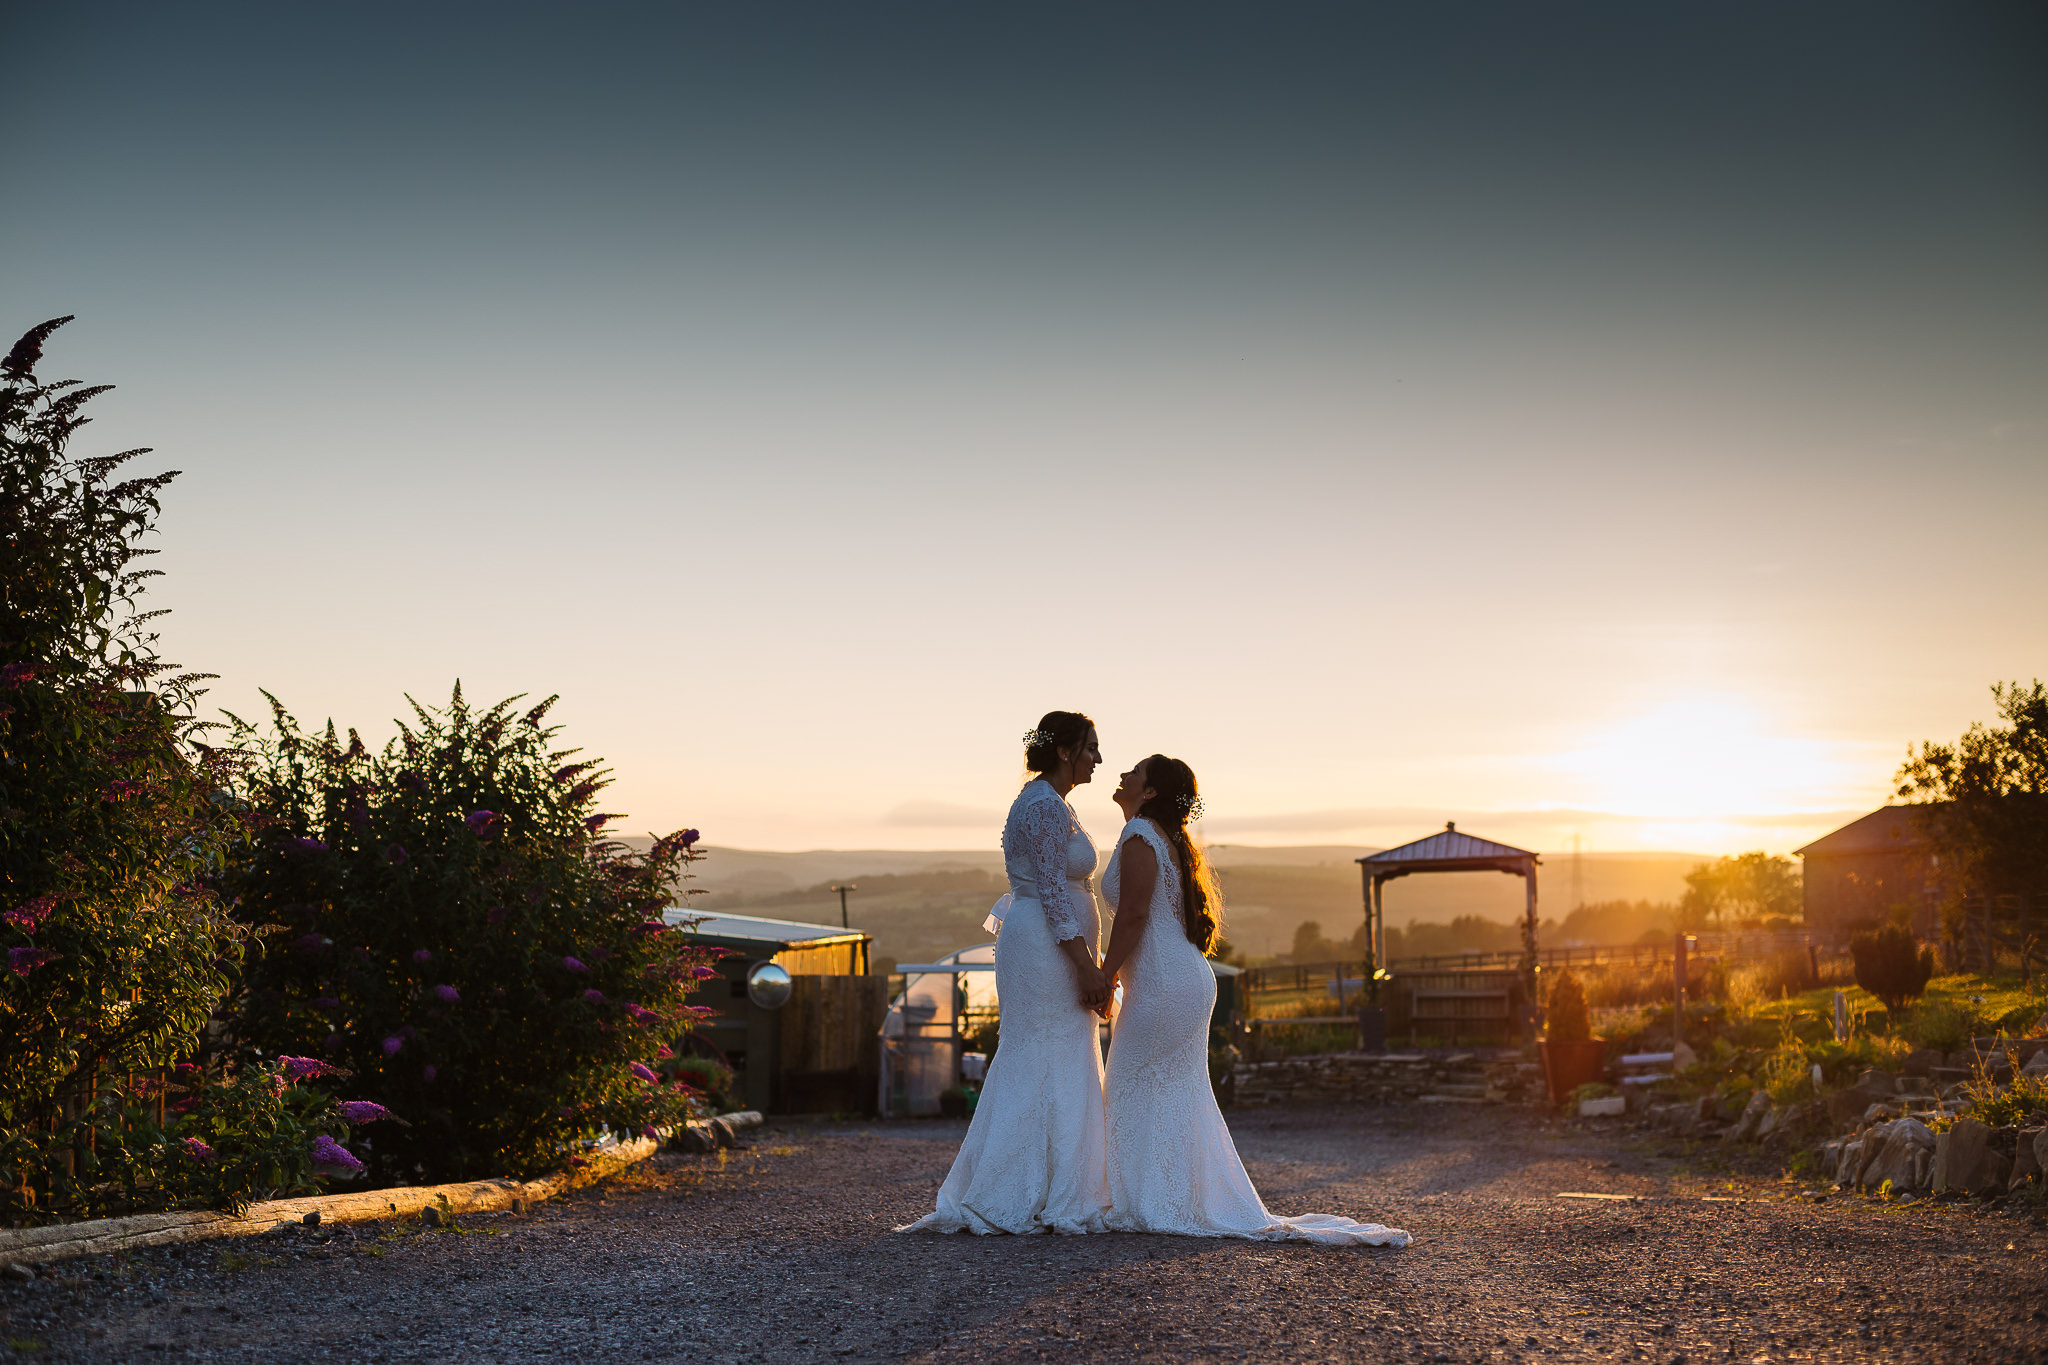 Two brides enjoy sunset at the wellbeing farm same sex wedding